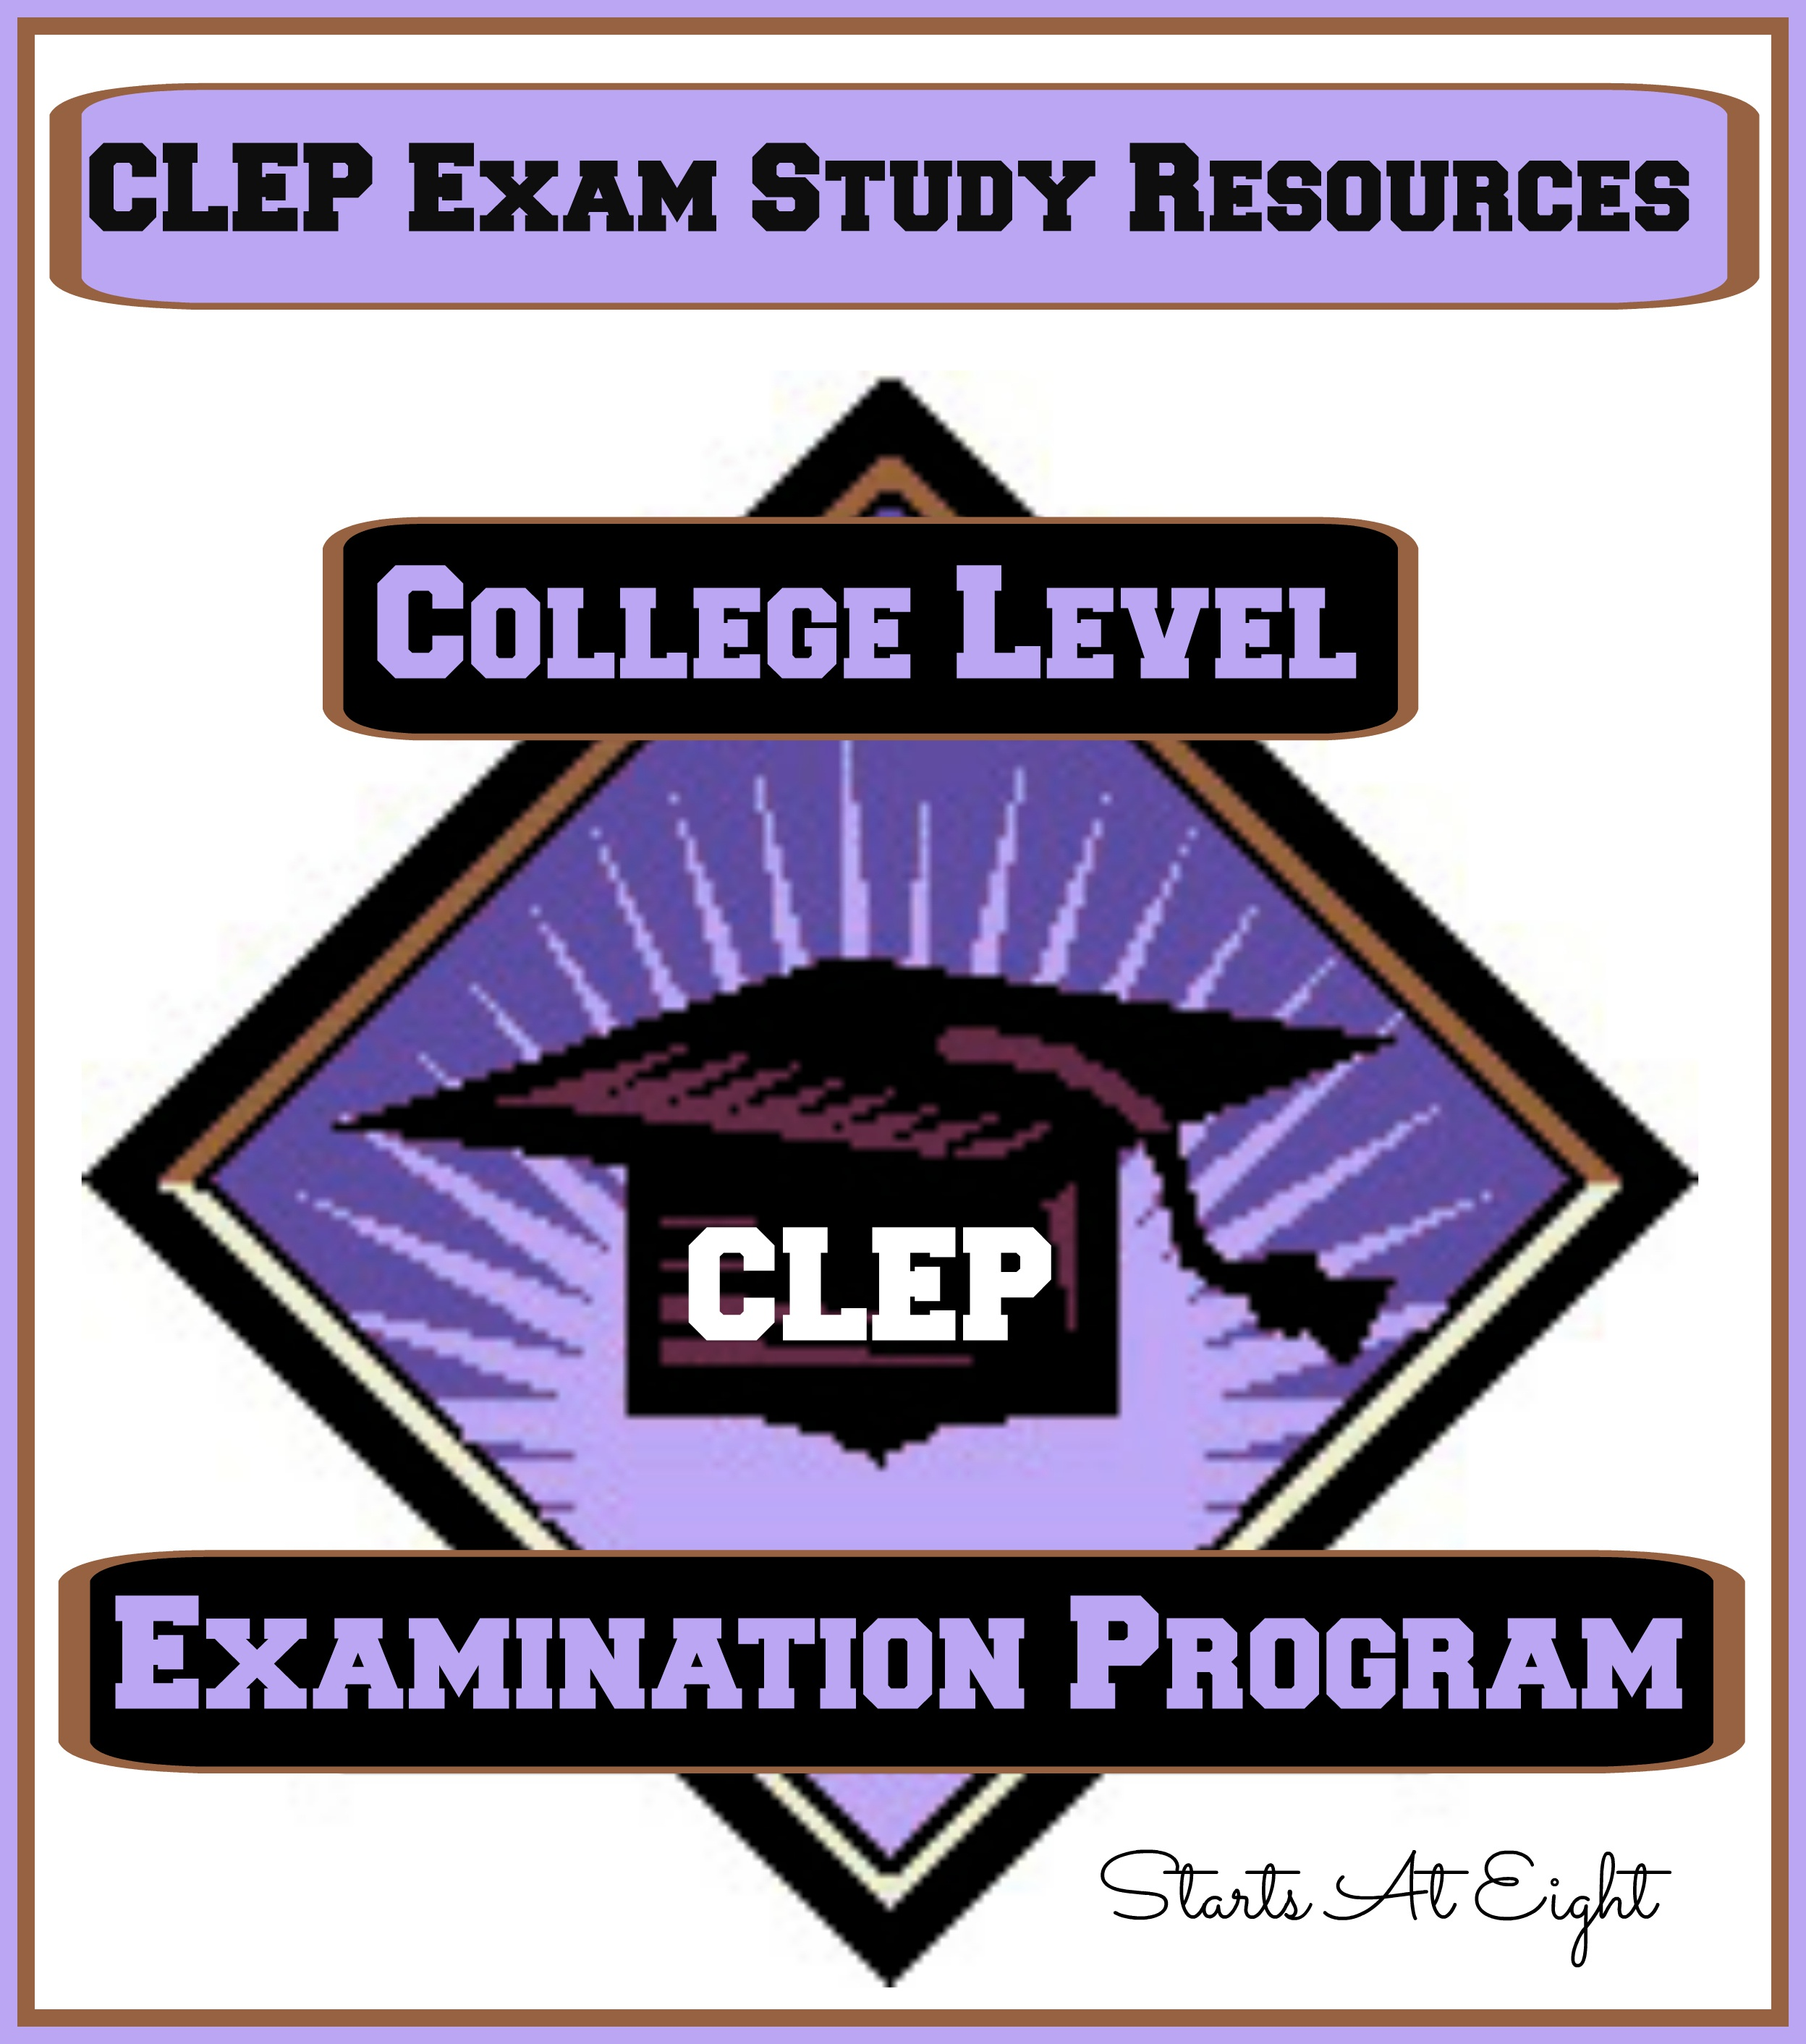 CLEP Exam Study Resources